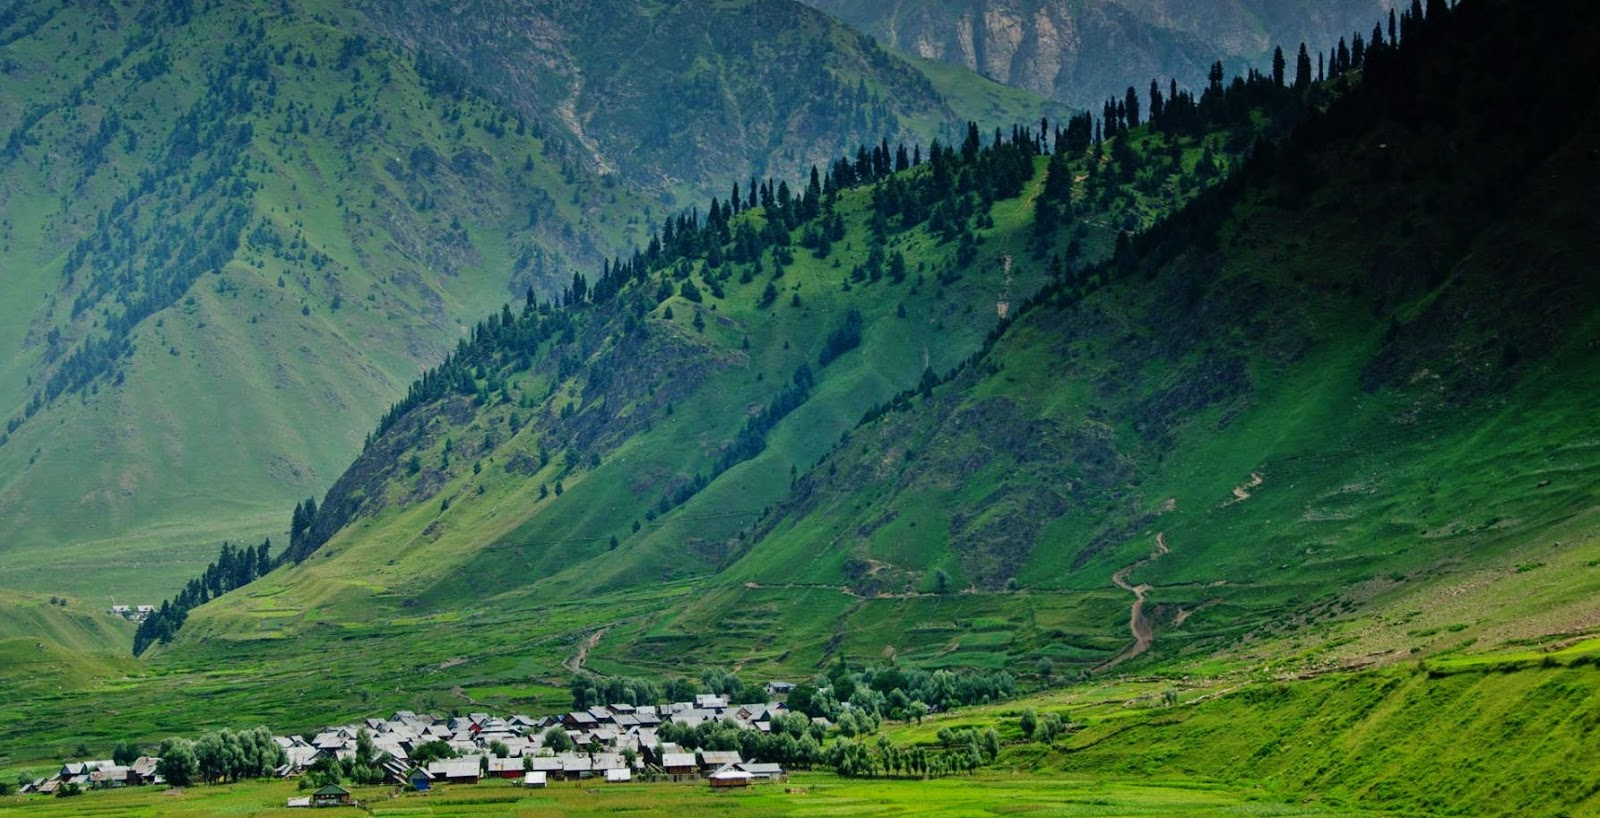 Warwan-Valley-travelandtreasures-Trekking-in-Kashmir